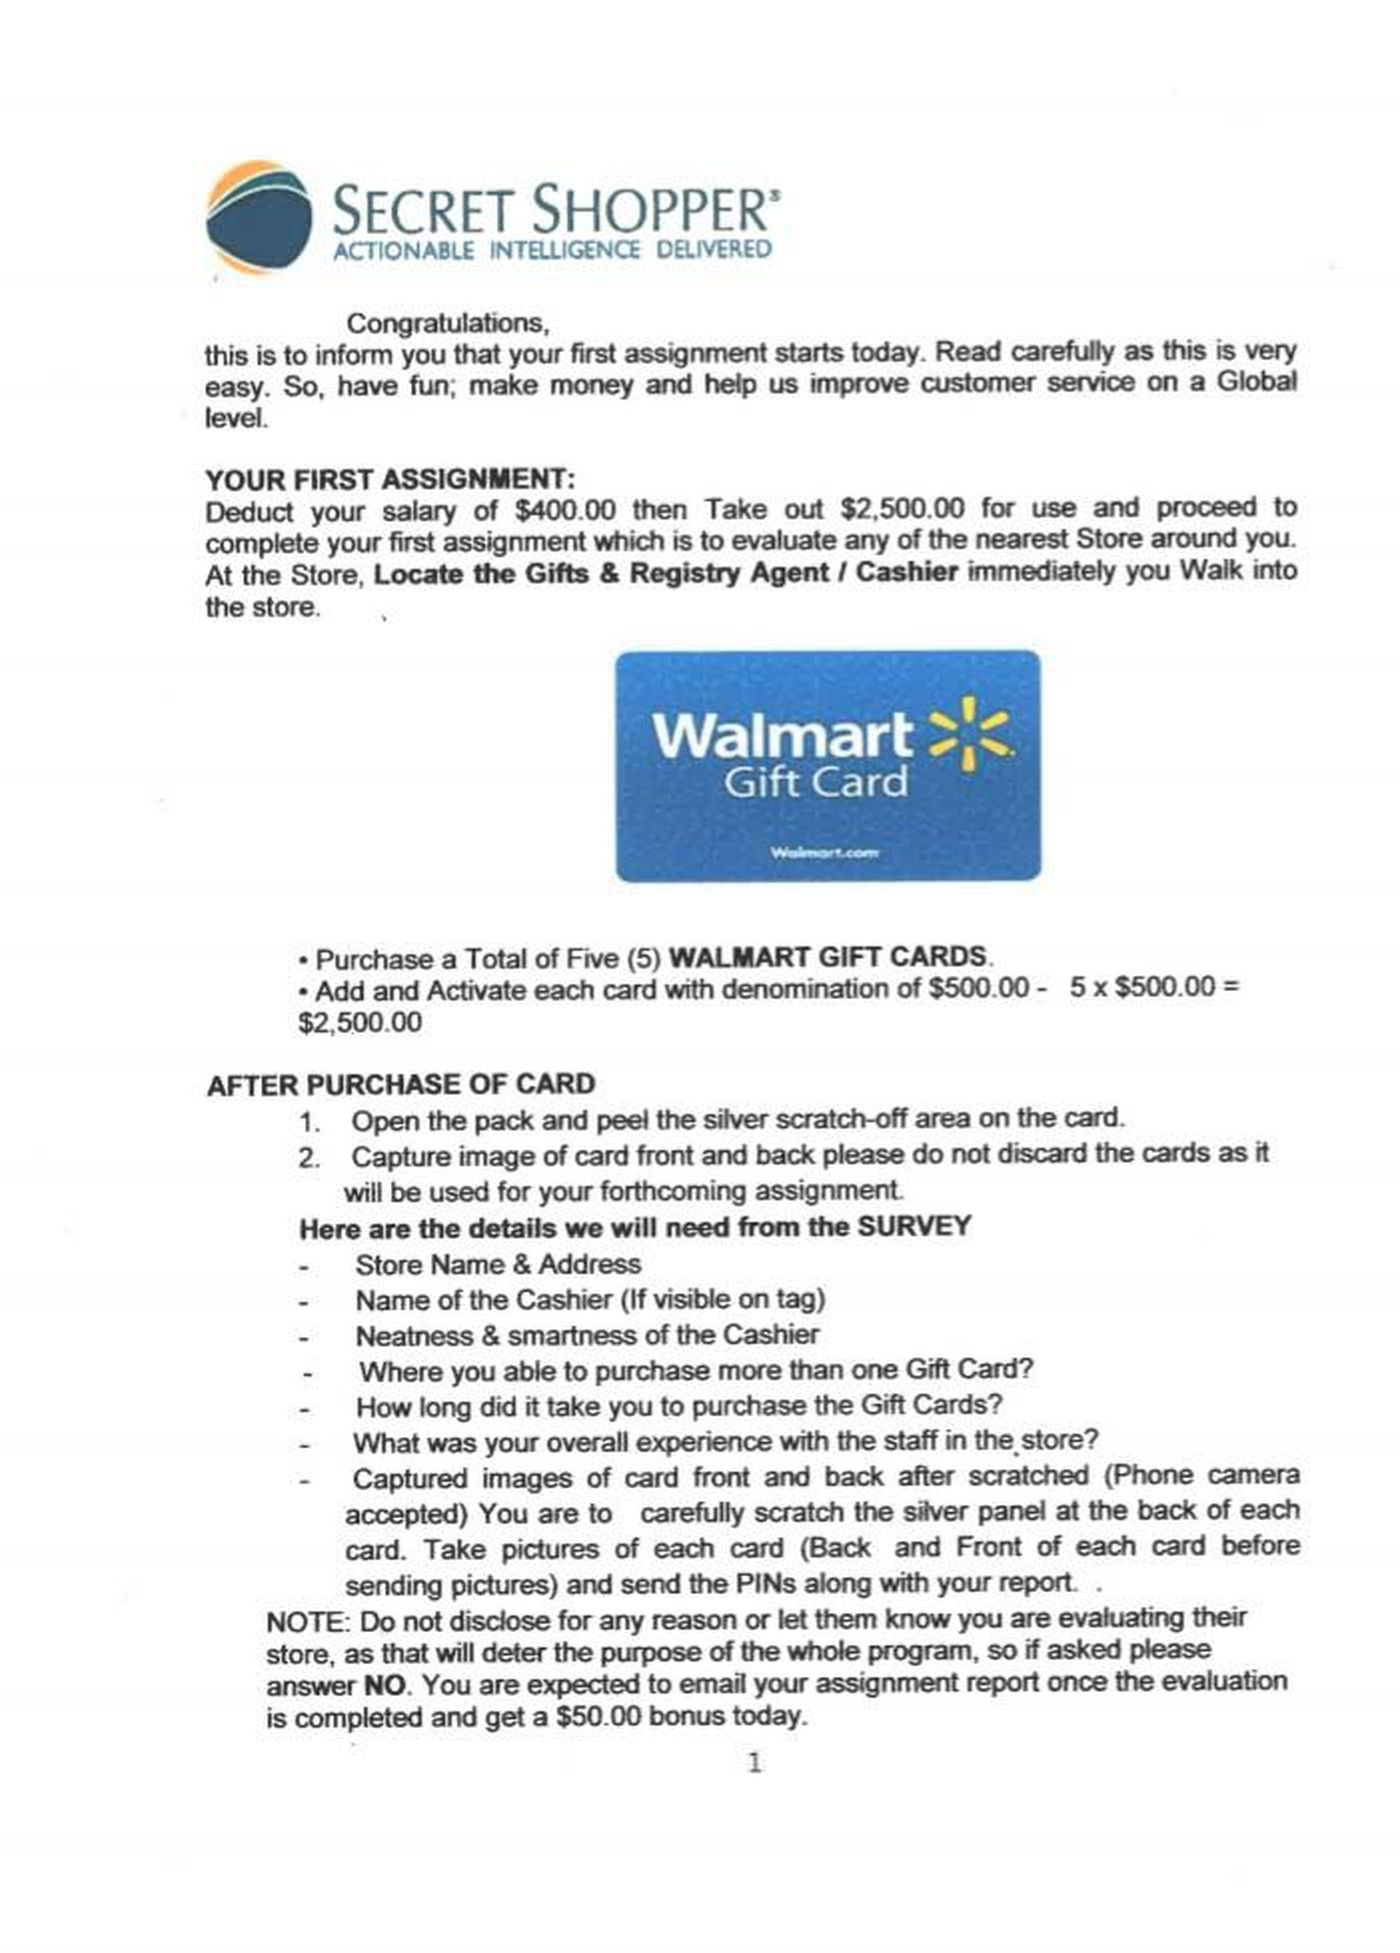 Man targeted by Walmart Secret Shopper scam, wants to warn others